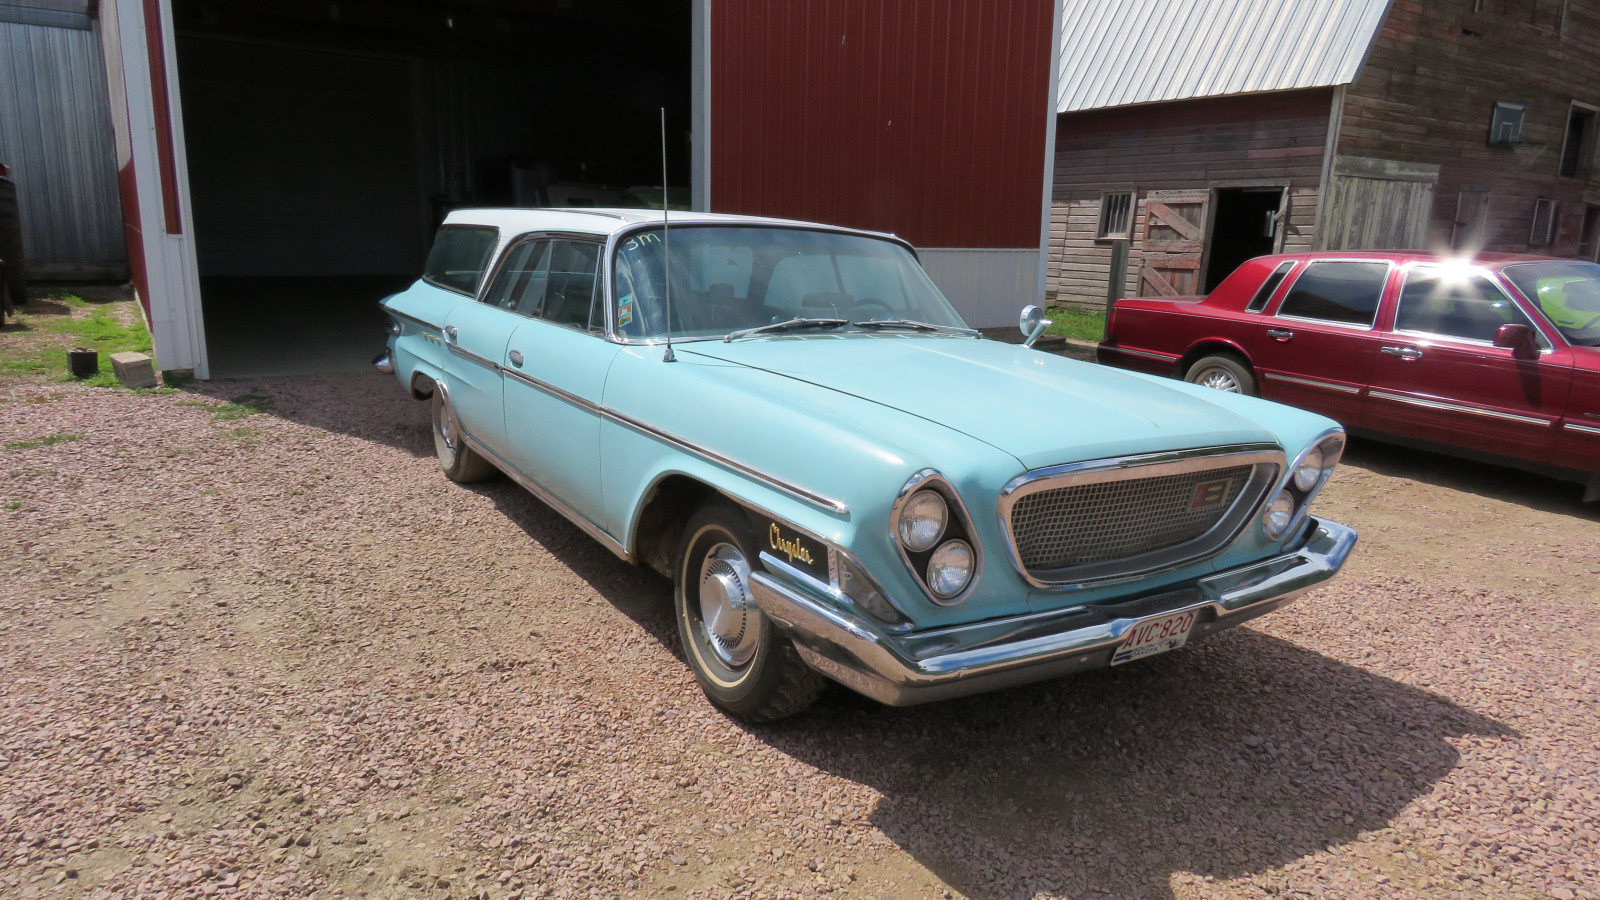 1962 Chrysler Newport 4dr Wagon Survivor - Image 1